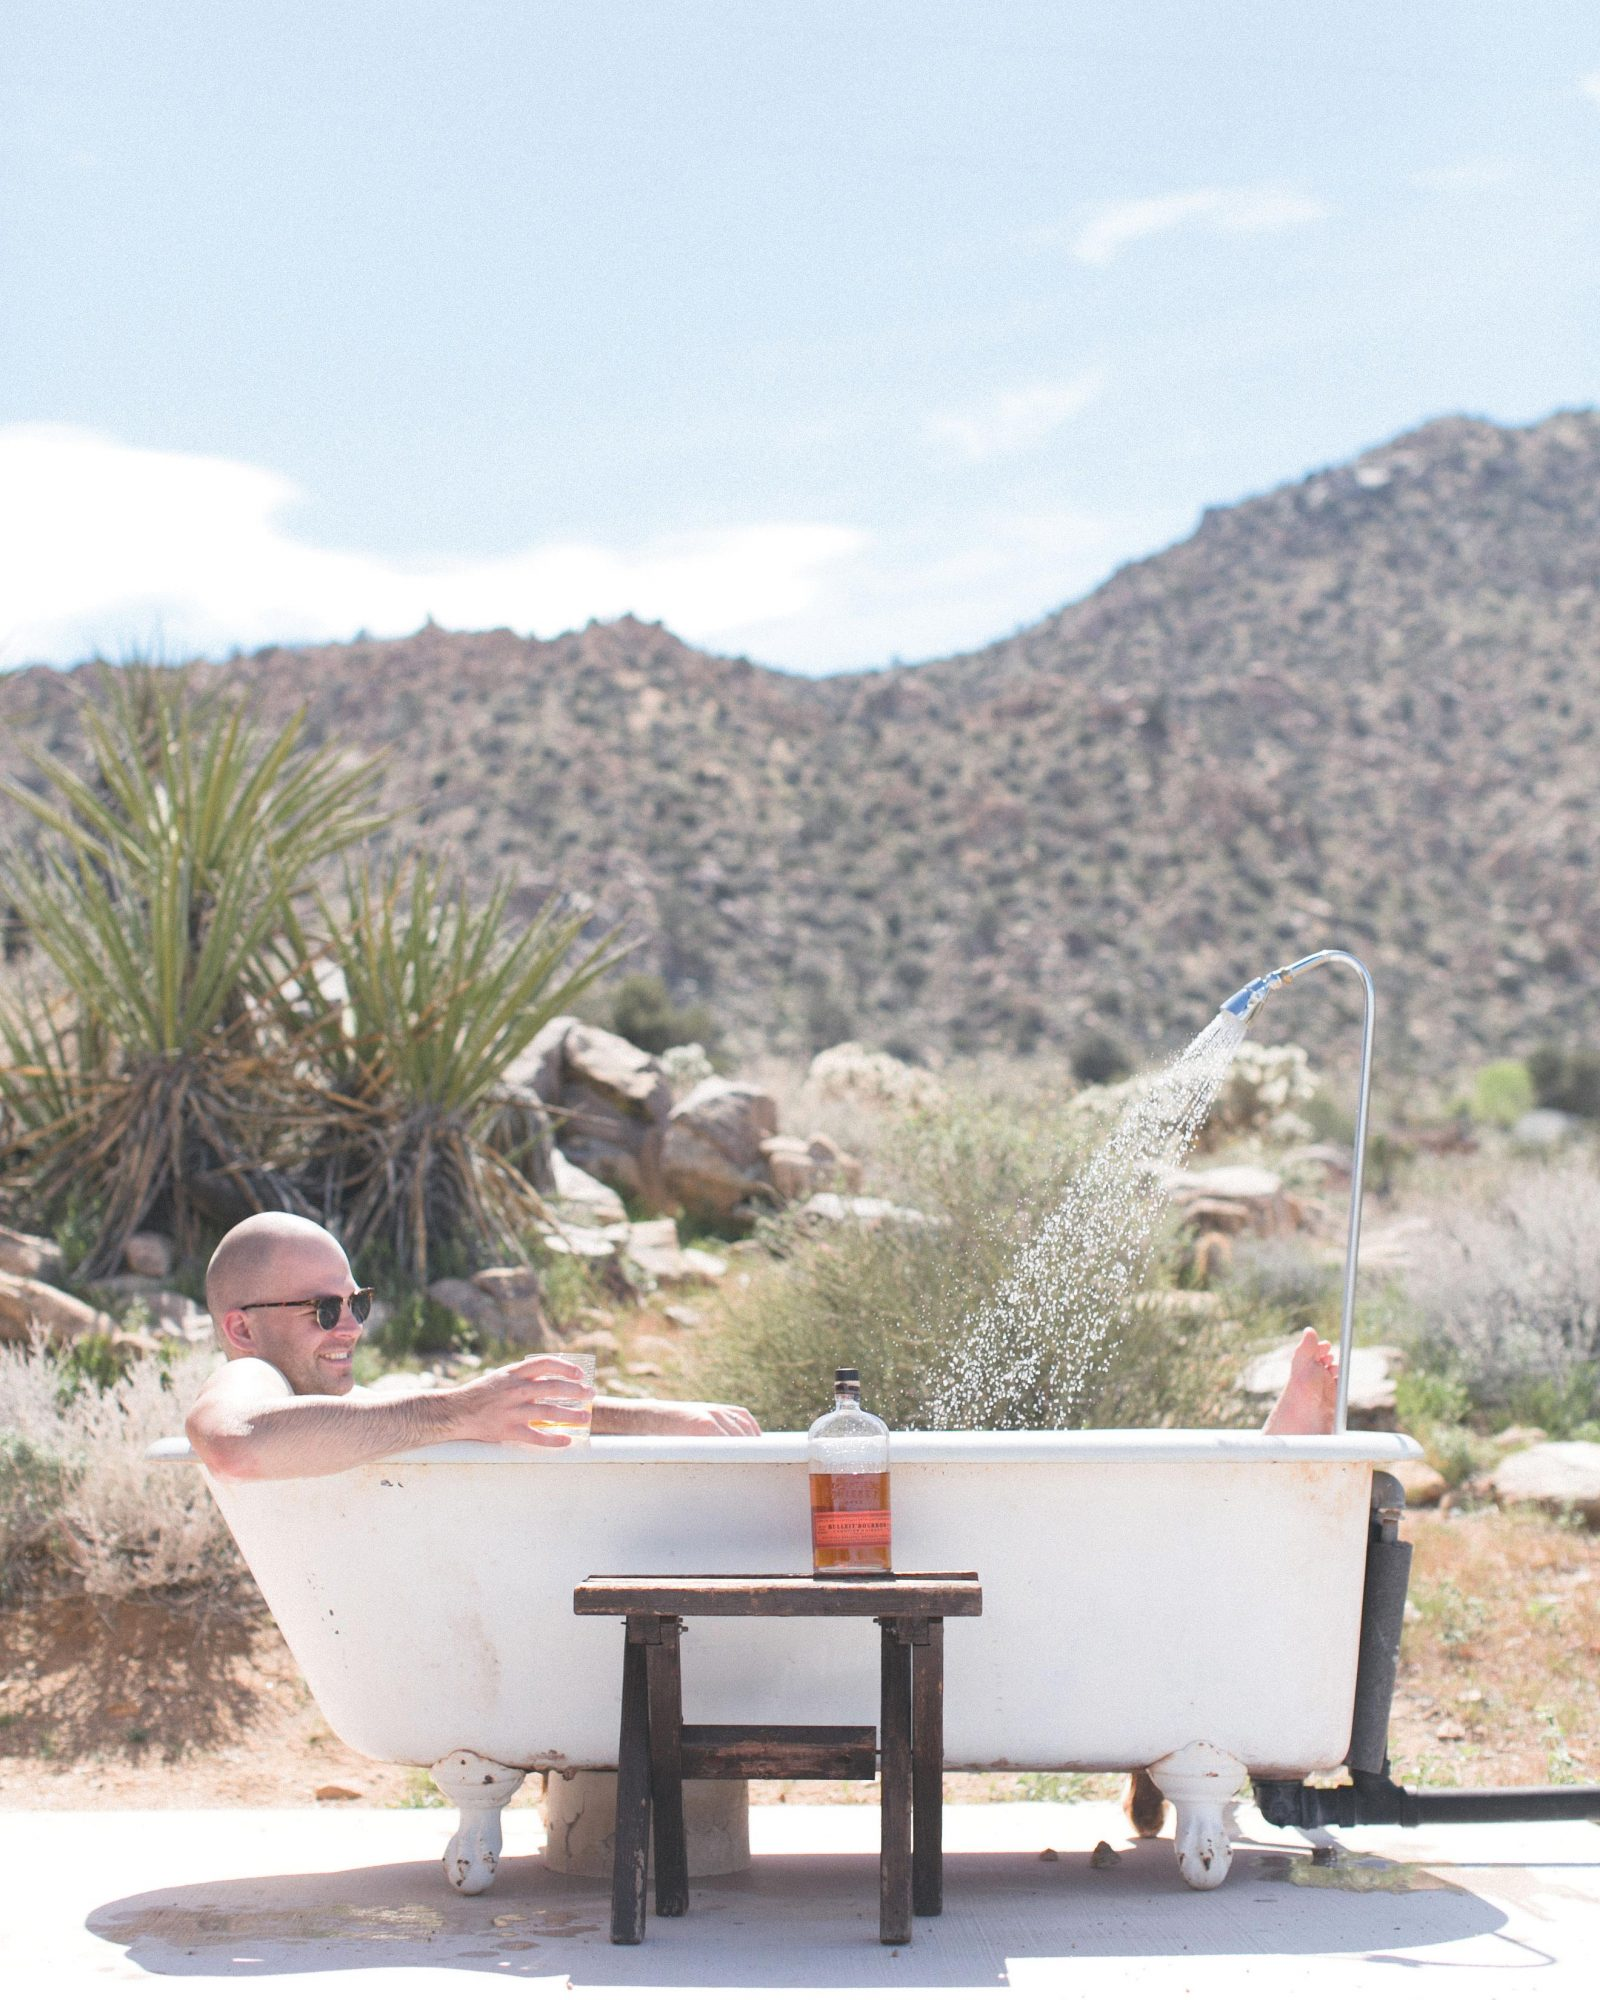 travel-honeymoon-diaries-air-bnb-joshua-tree-bath-tub-outdoor-s112941.jpg